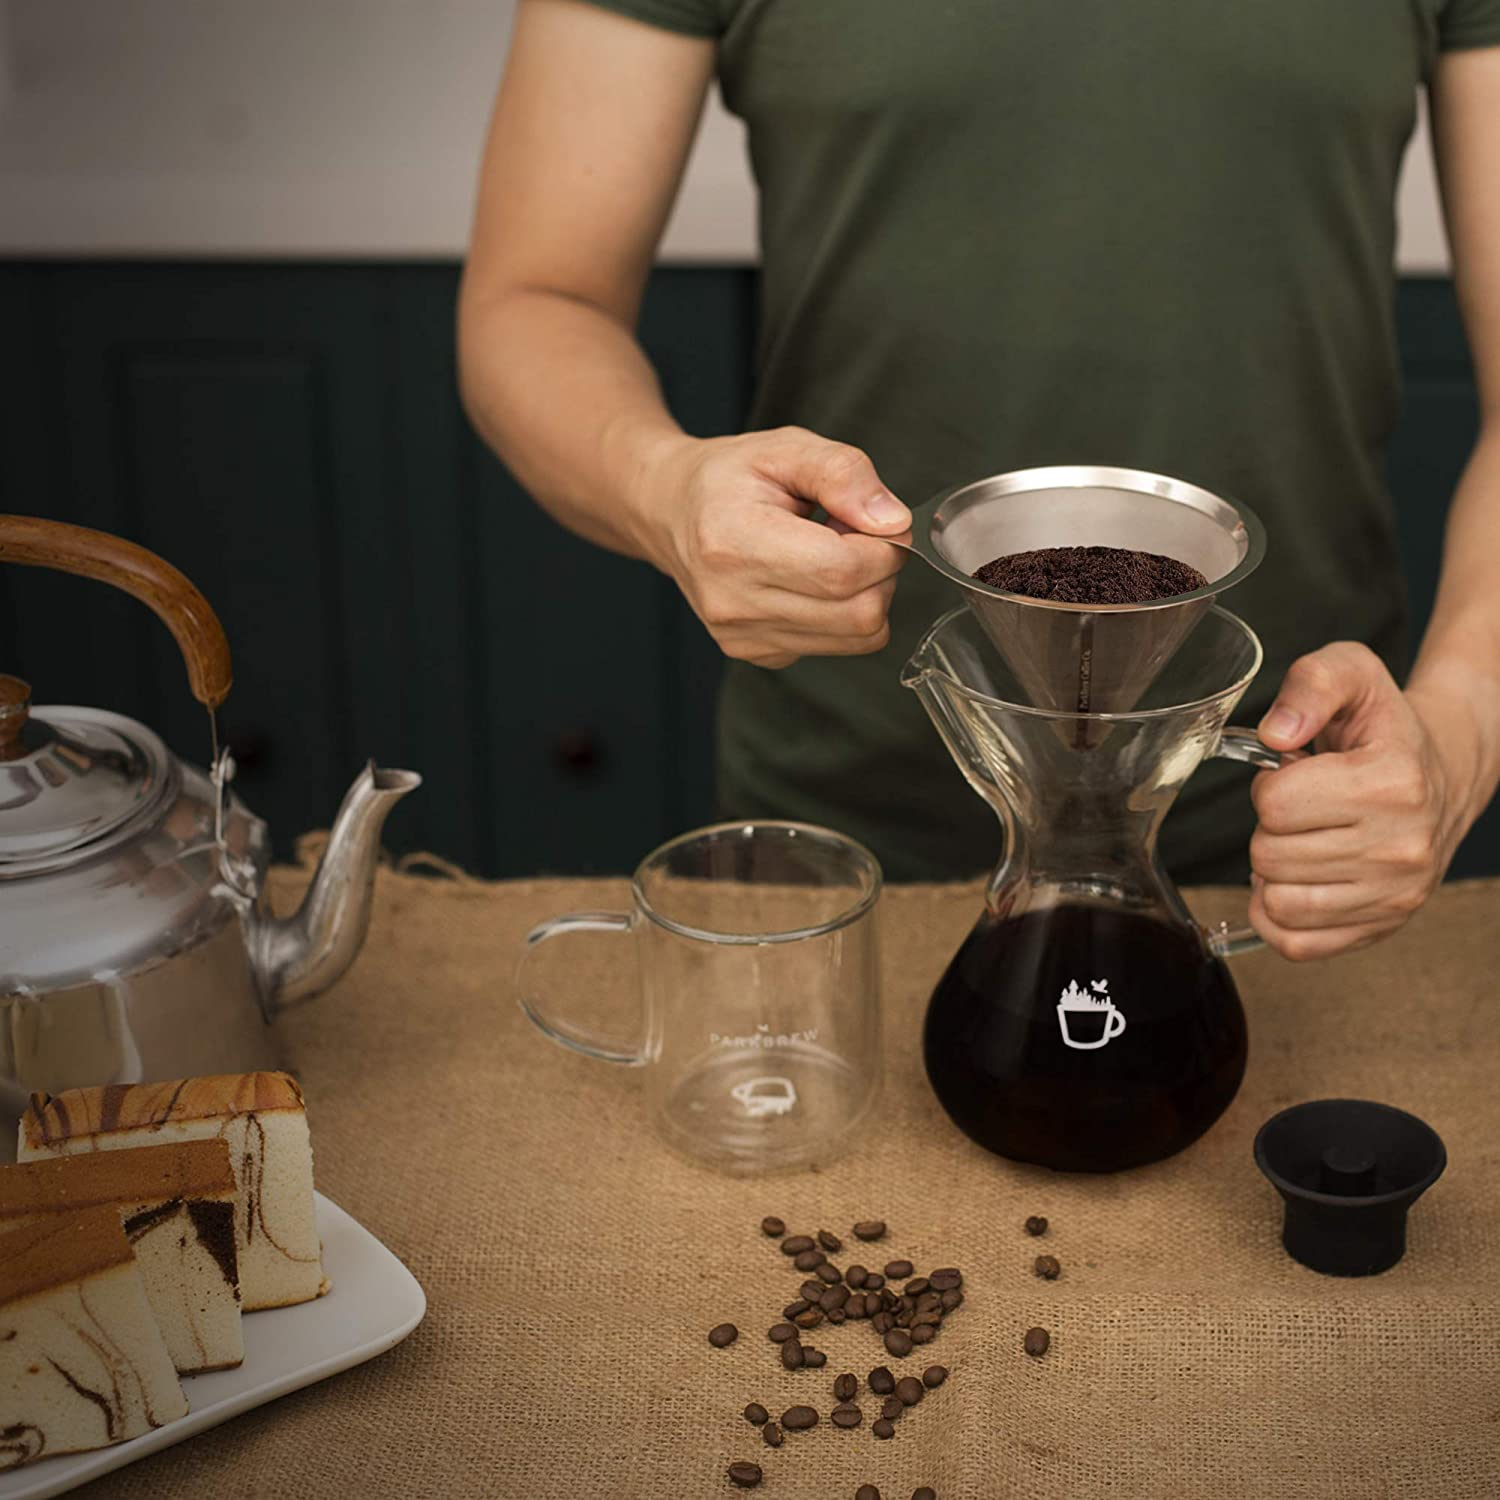 ParkBrew Pour Over Coffee Maker - set includes glass pourover carafe (up to 27 fl. oz.), heat retaining lid, and reusable coffee filter or dripper